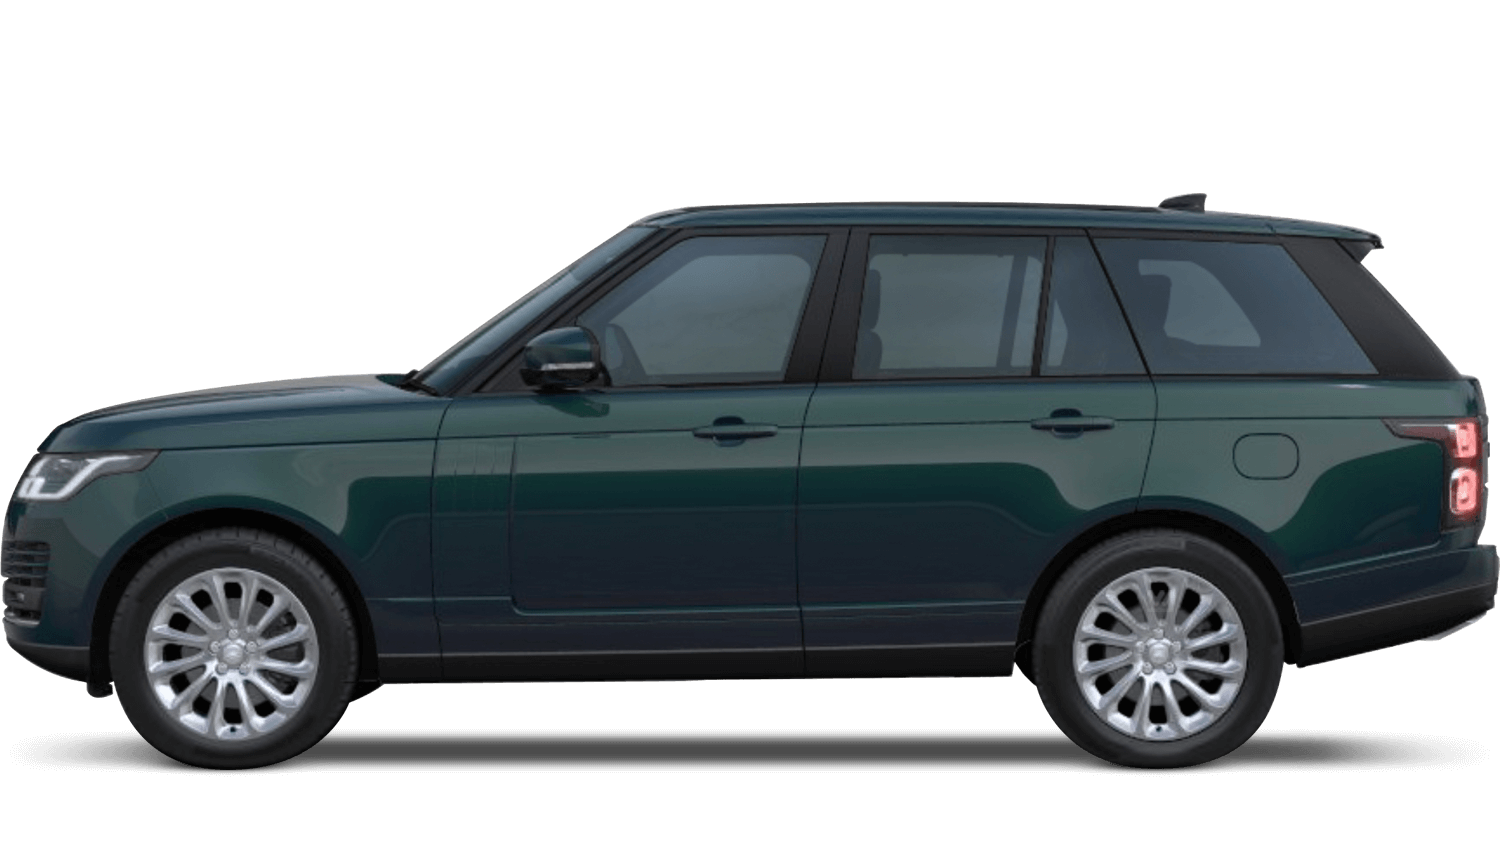 Spectral British Racing Green (ChromaFlair) Land Rover Range Rover Phev